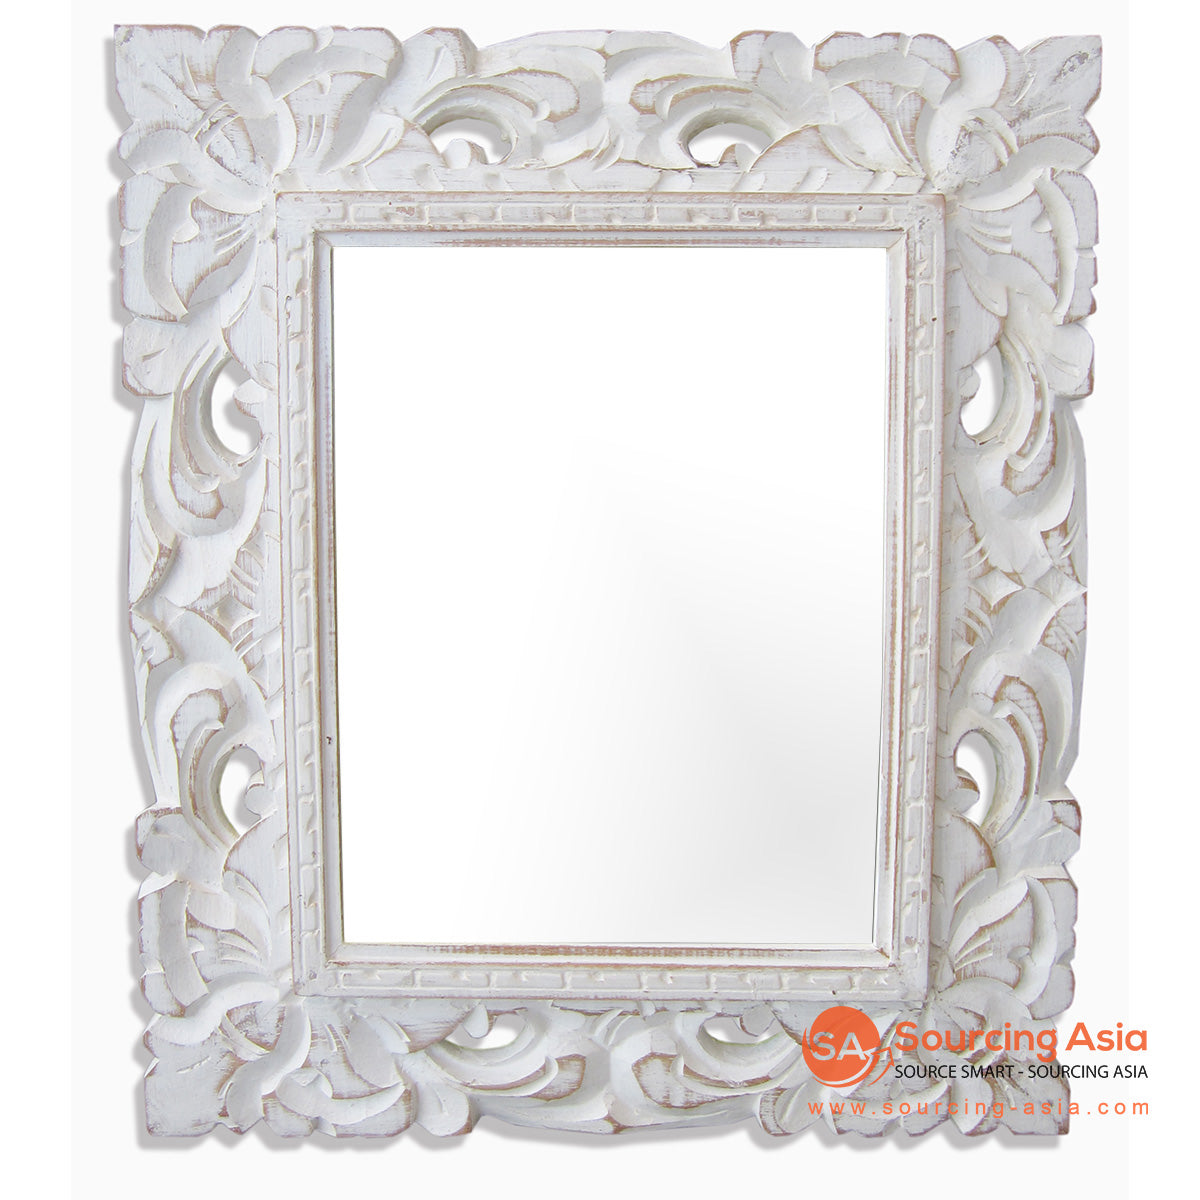 SSU022WW-33X38 WOODEN MIRROR WITH CARVING